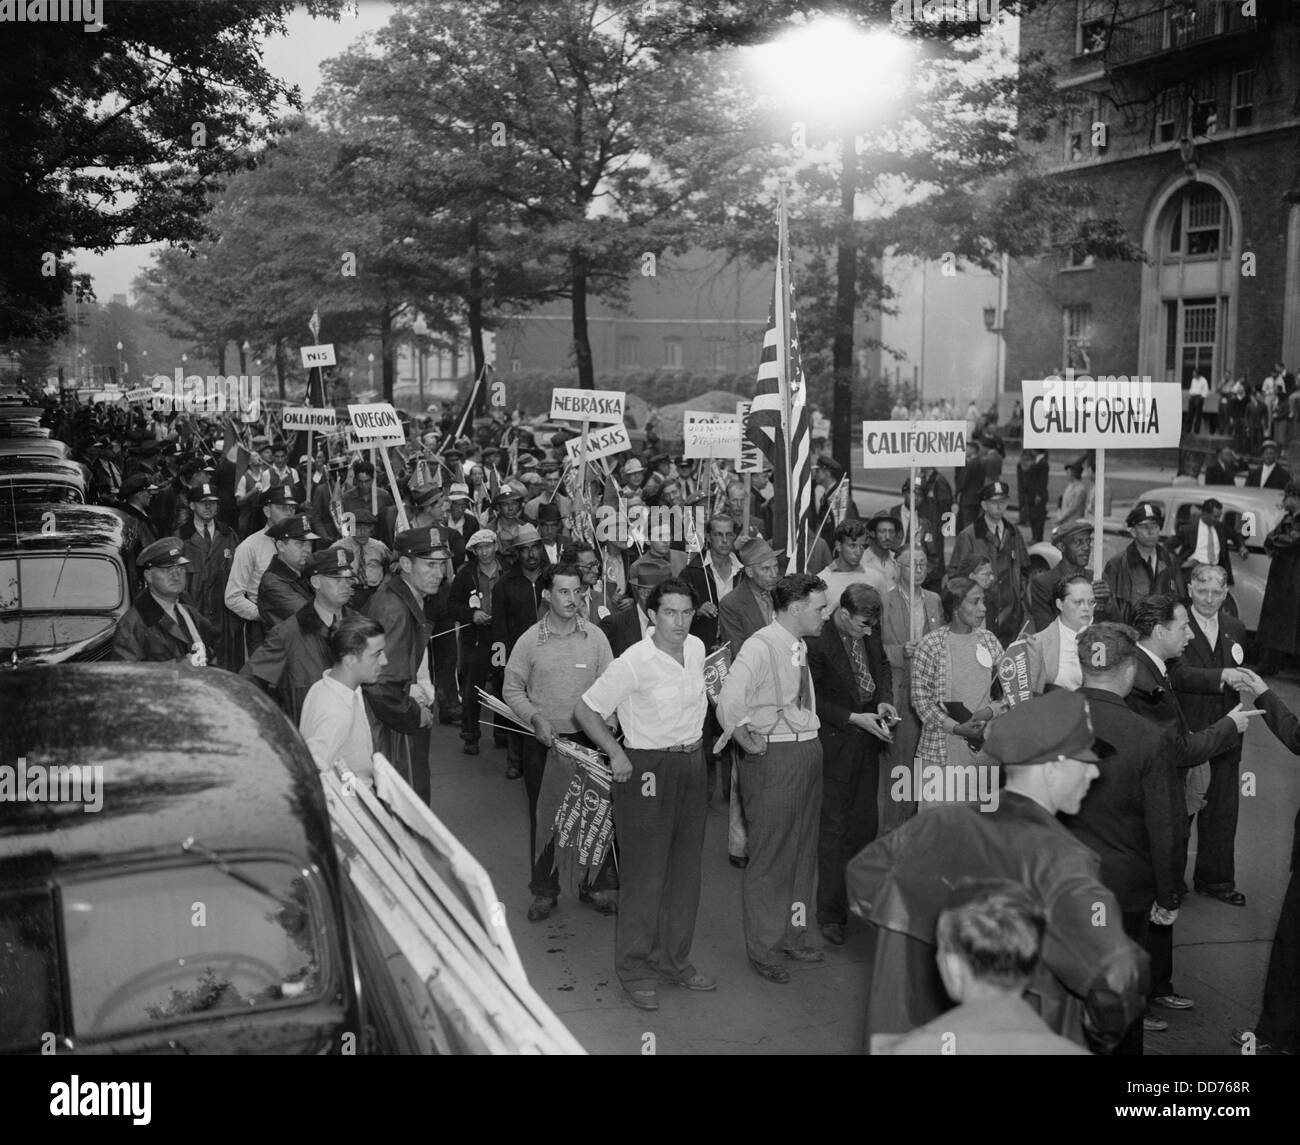 WPA workers protest lay-offs in Washington, D.C. Aug. 24, 1937. Some of the over 2000 dismissed WPA workers marching - Stock Image